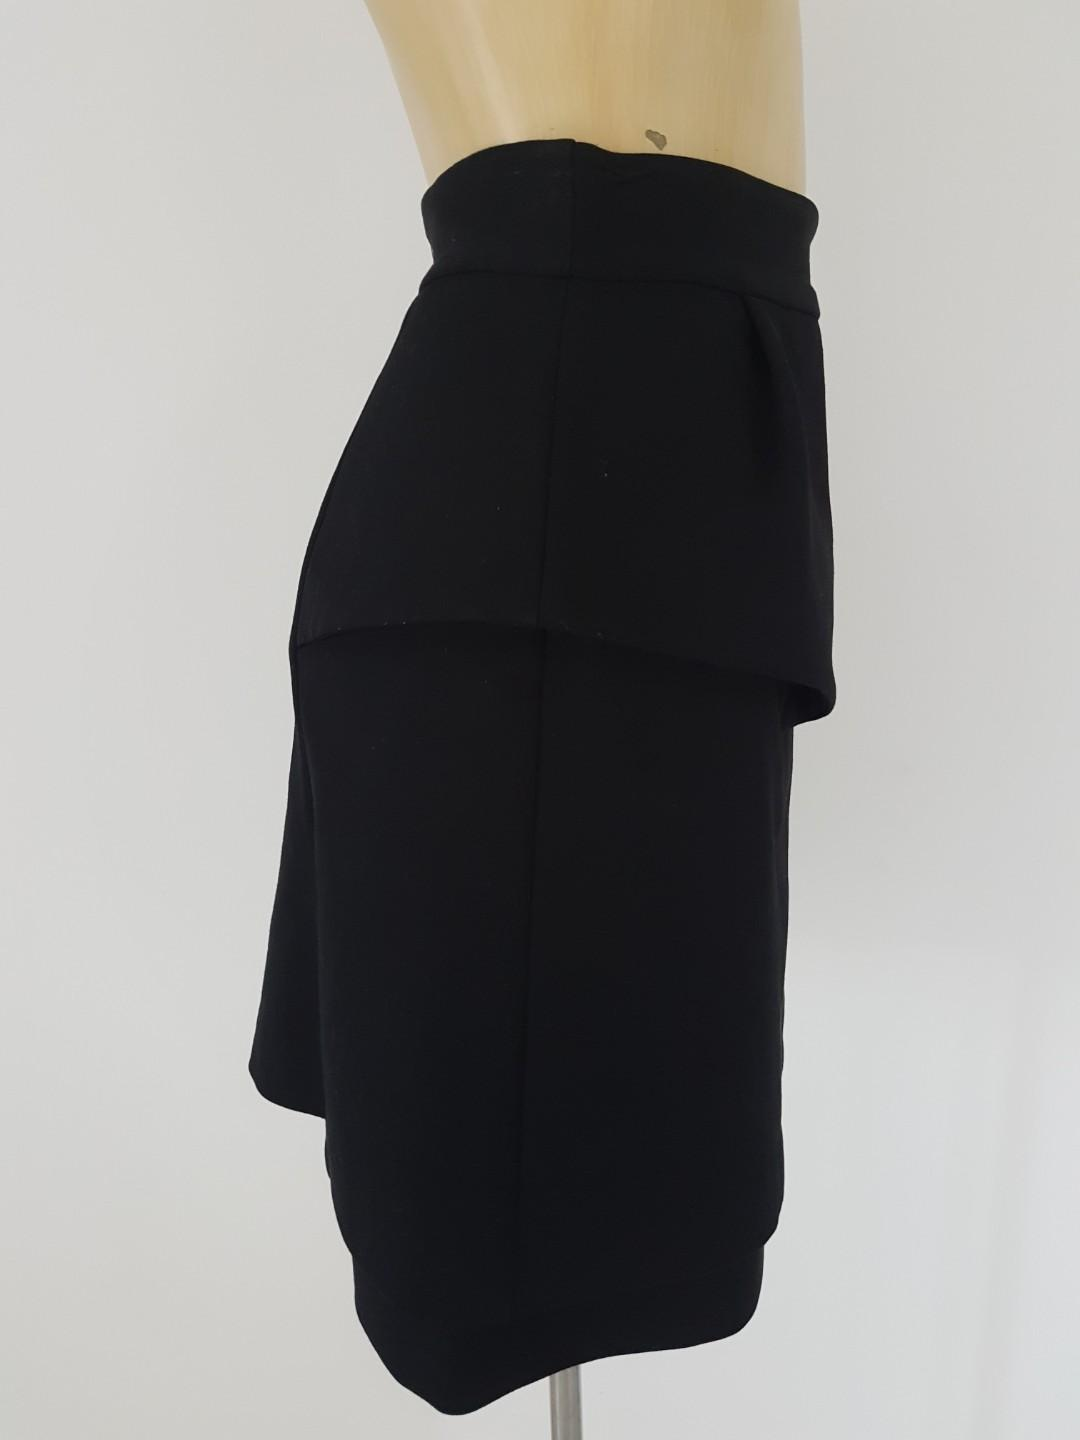 Cue Size 8 Peplum Black Lined Skirt - Excellent Condition!